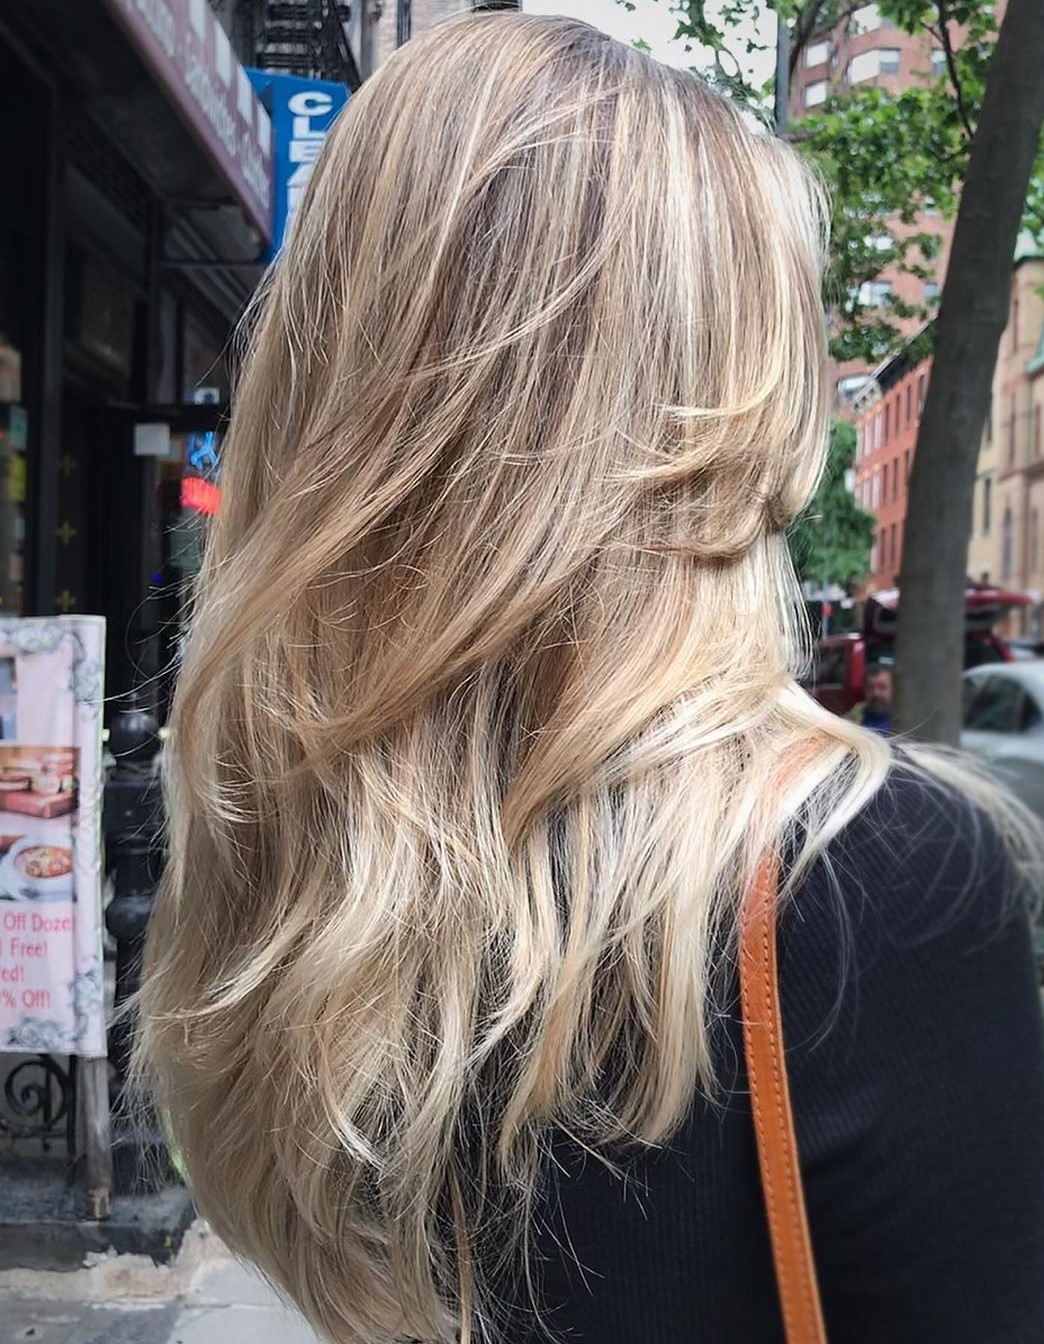 Female Haircut with Long Layers